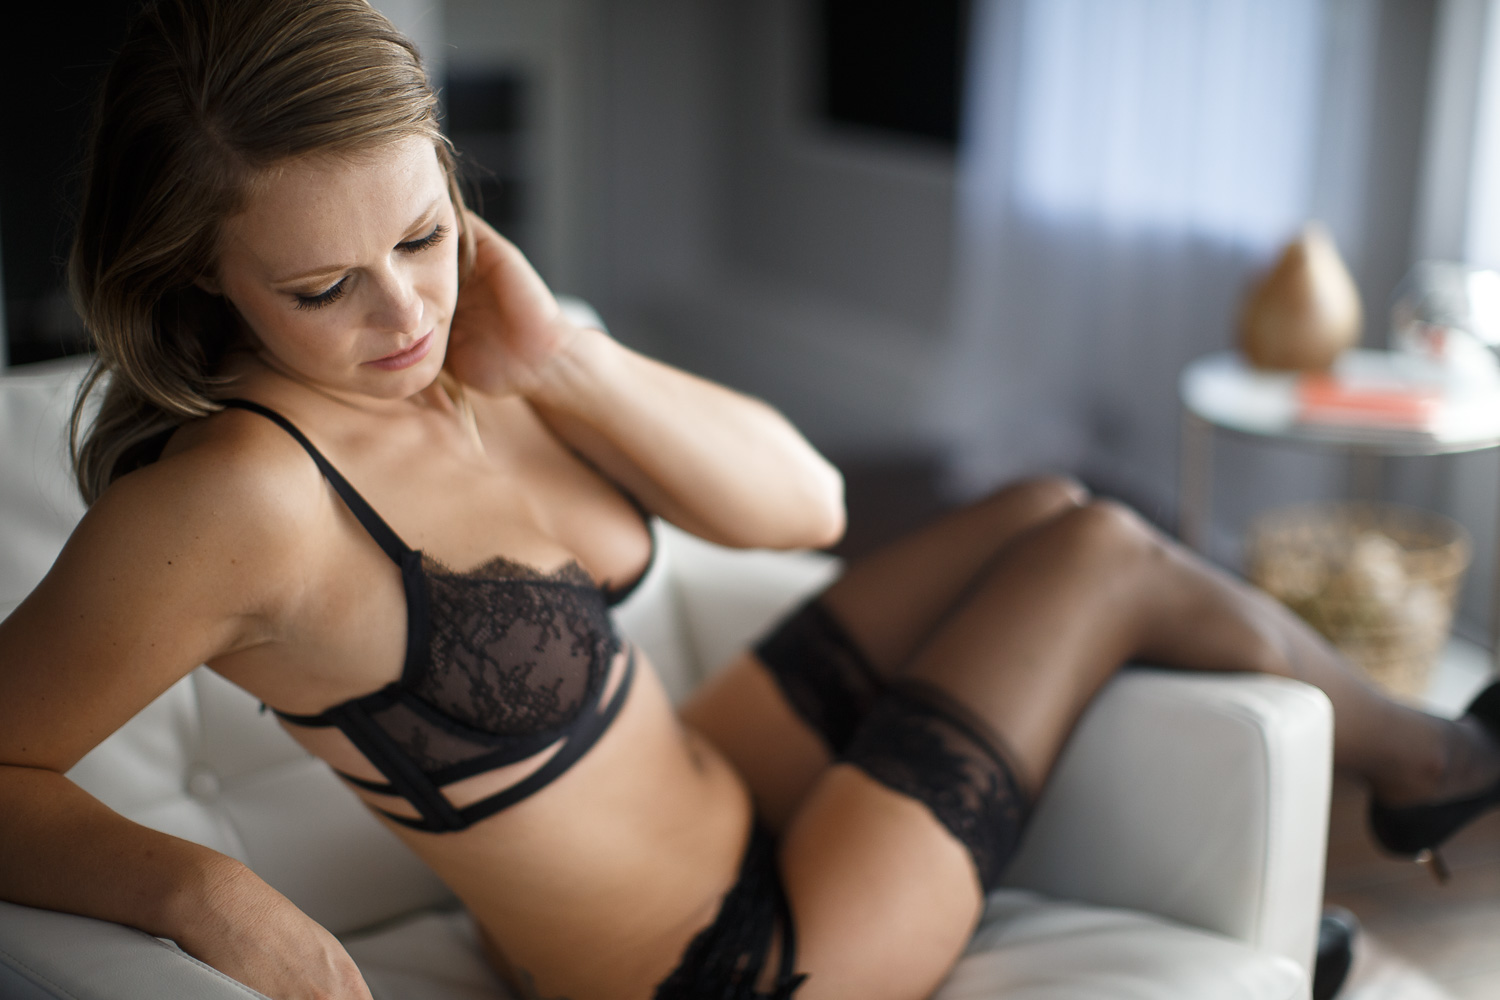 Boudoir model sitting on couch